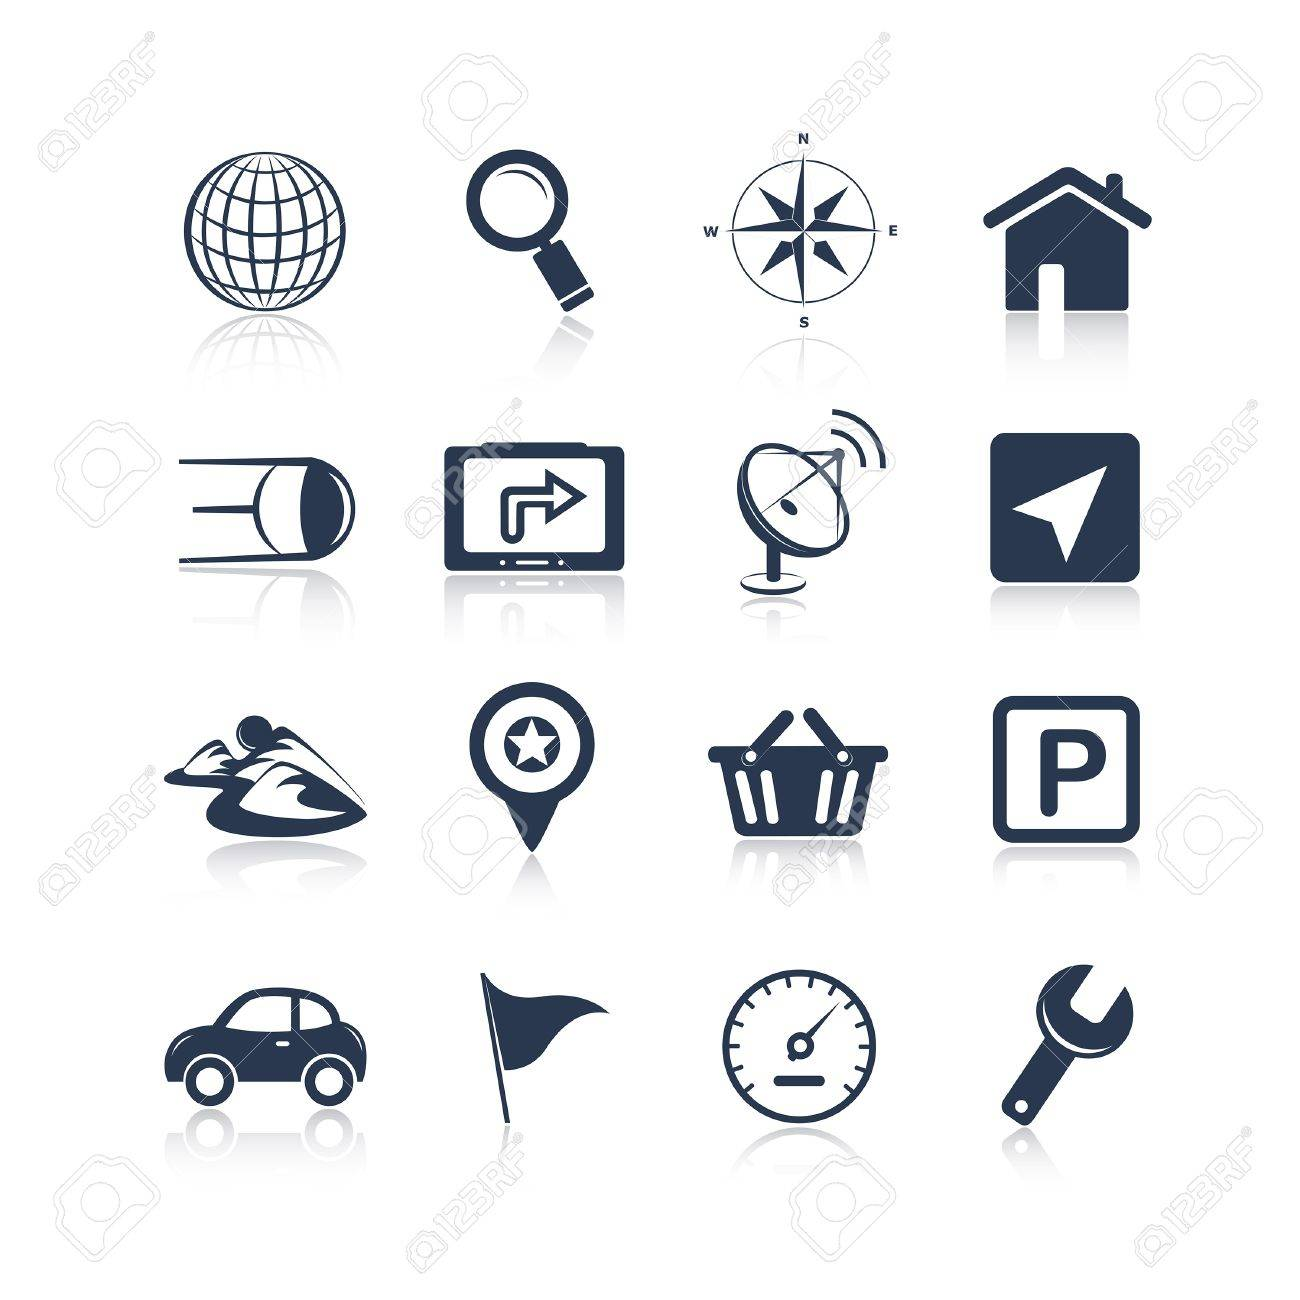 Navigation apps icons Stock Vector - 19978305